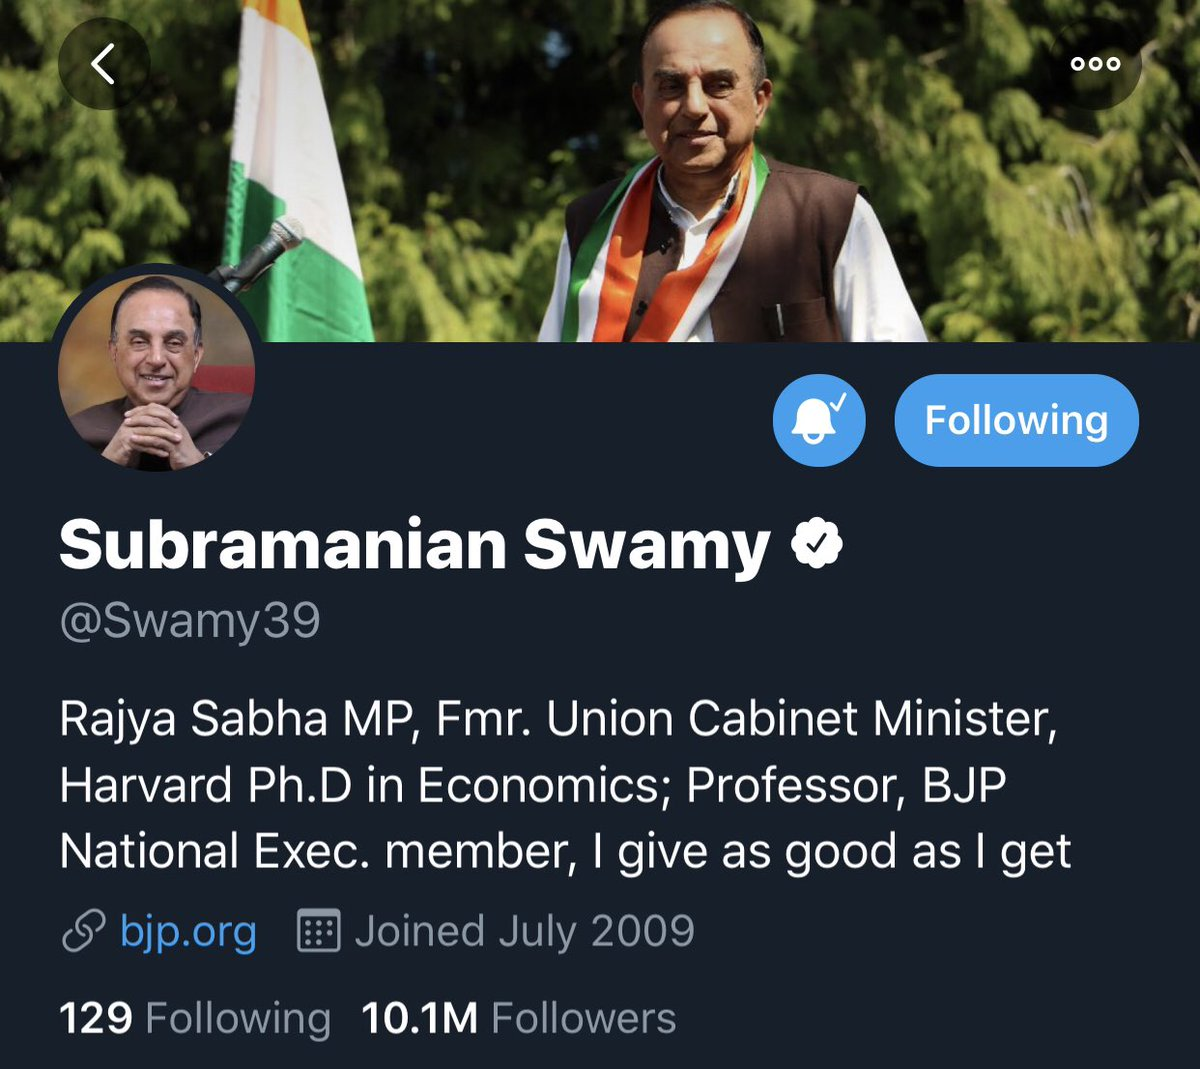 RESTORED Twitter could have been responsible enough @Swamy39 ji's account is a verified account.These cheap antics will not stop his blitzkrieg better be warned Bangla @jagdishshetty A Bangla Deshi guy had claimed copyright on the 2 photographs on Twitter profile of Dr SwamyJi.